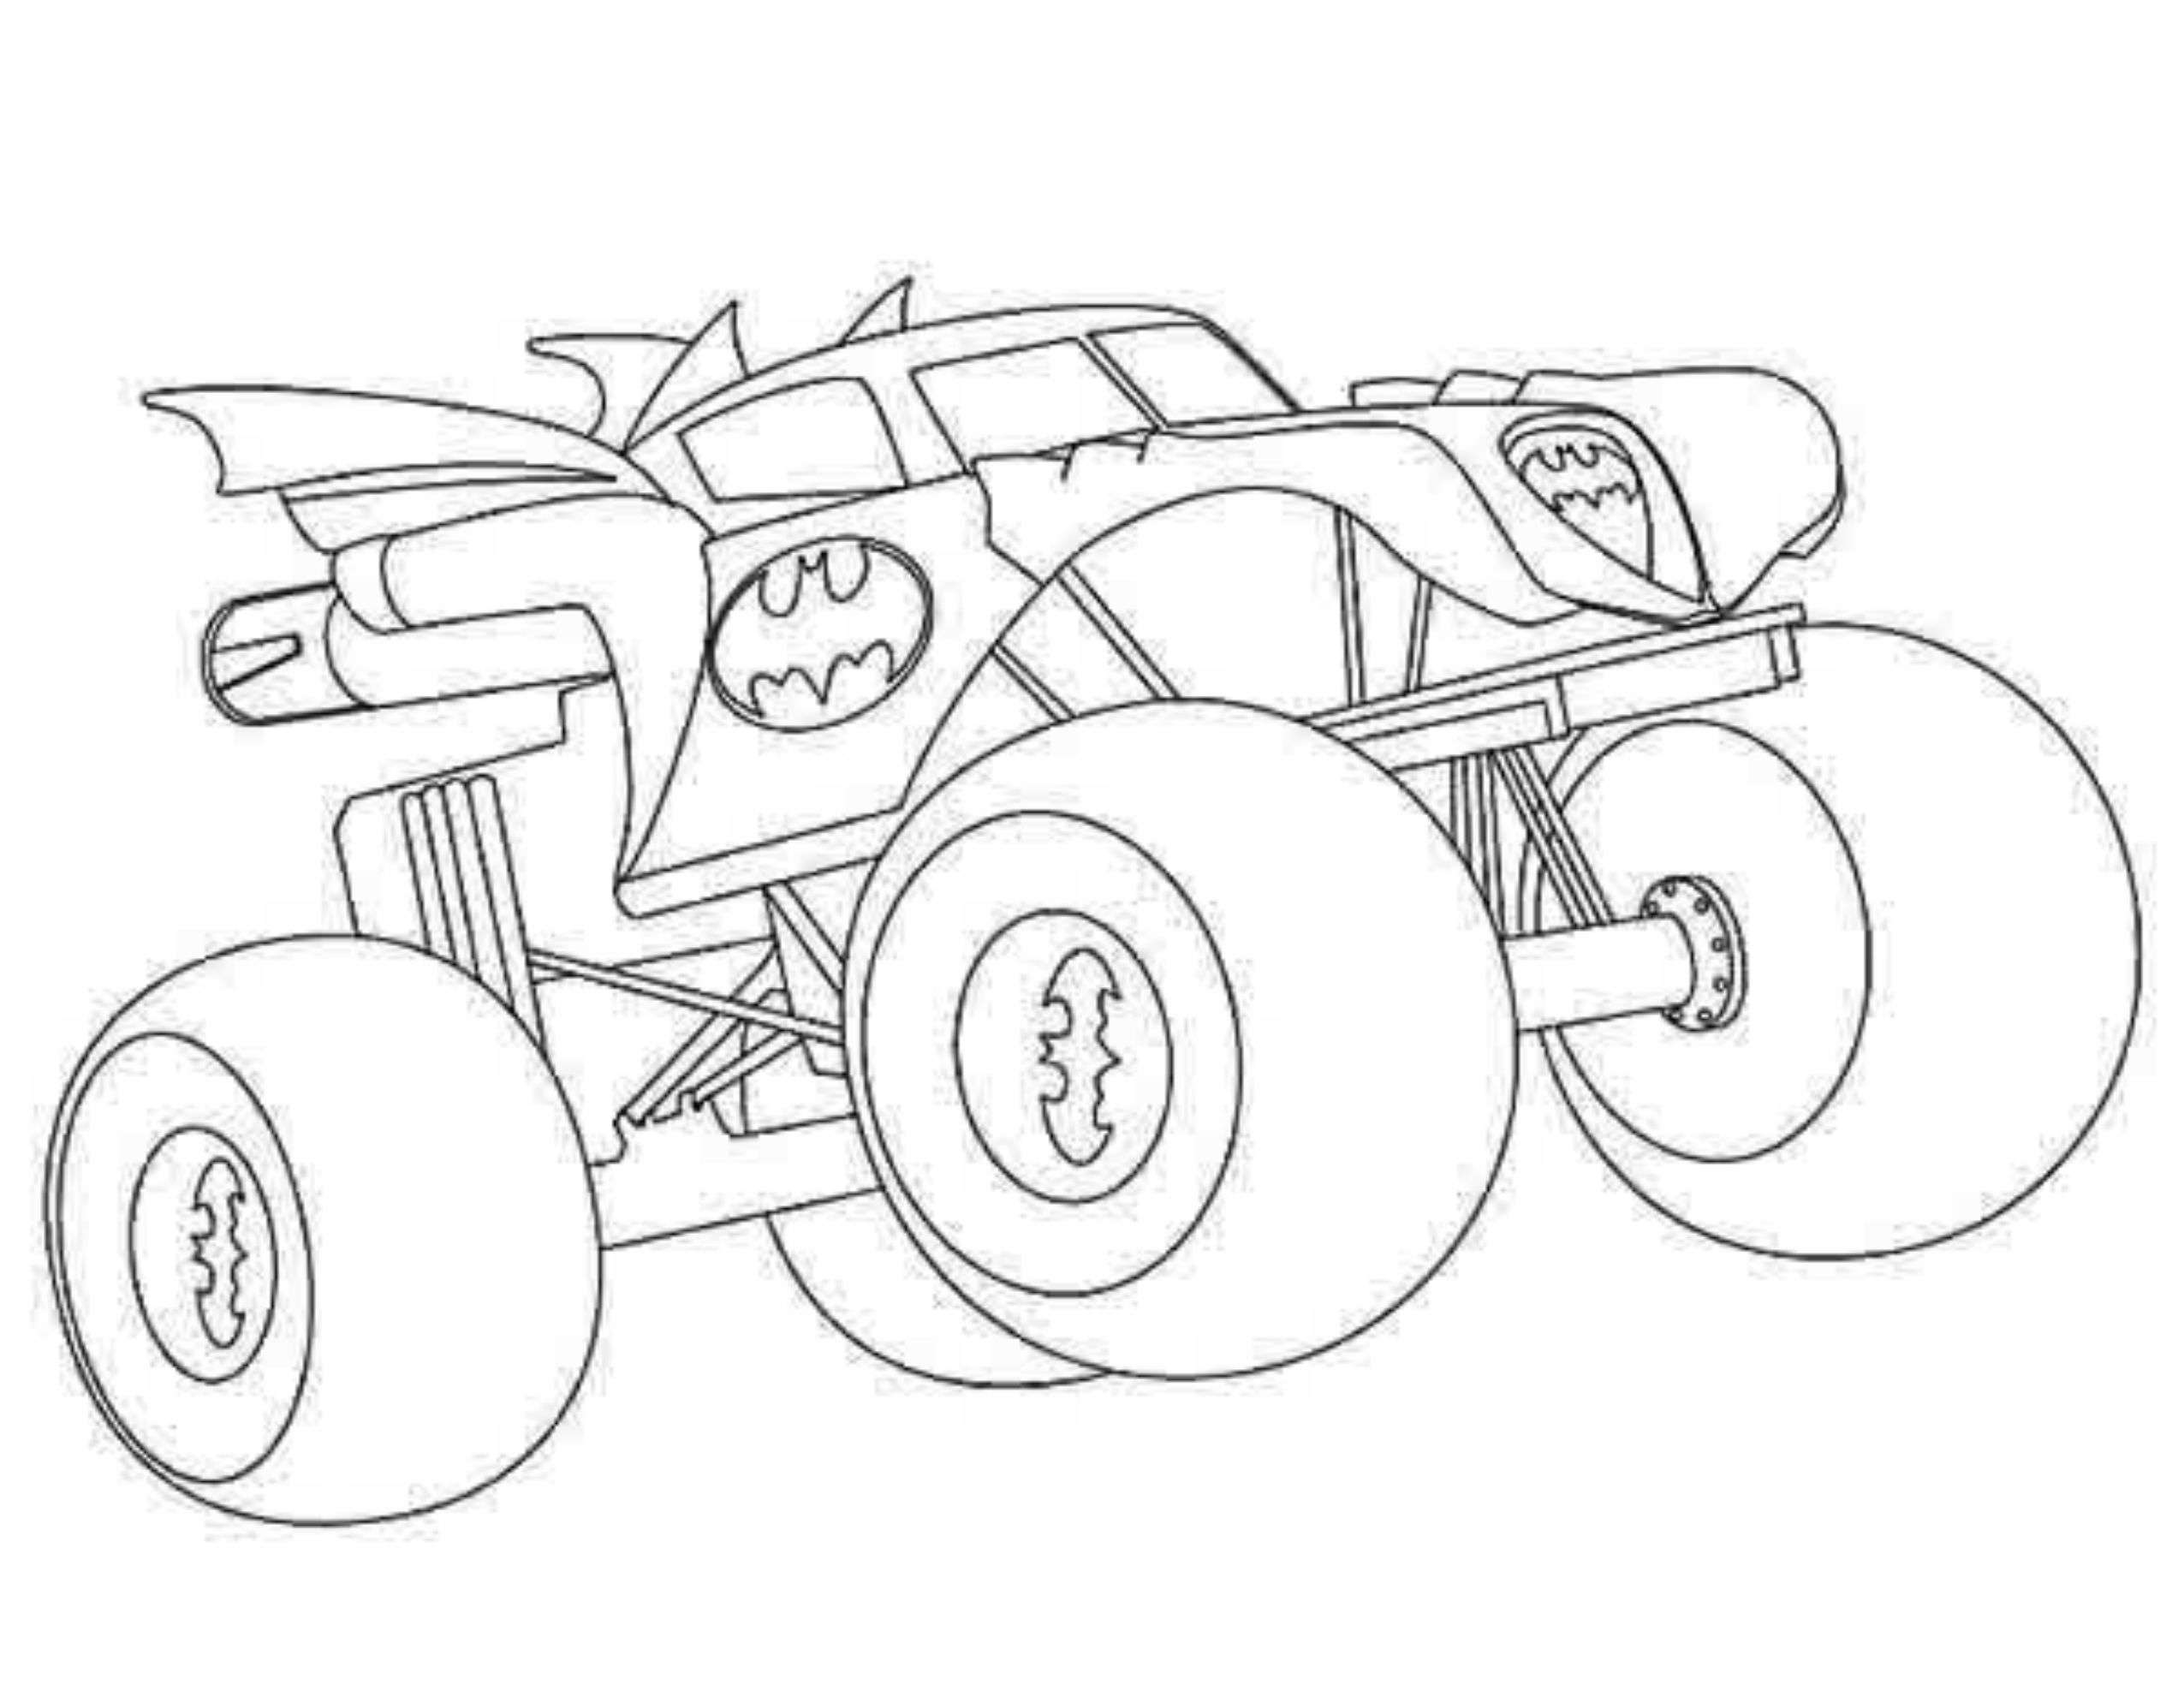 coloring monster trucks 20 free printable monster truck coloring pages coloring monster trucks